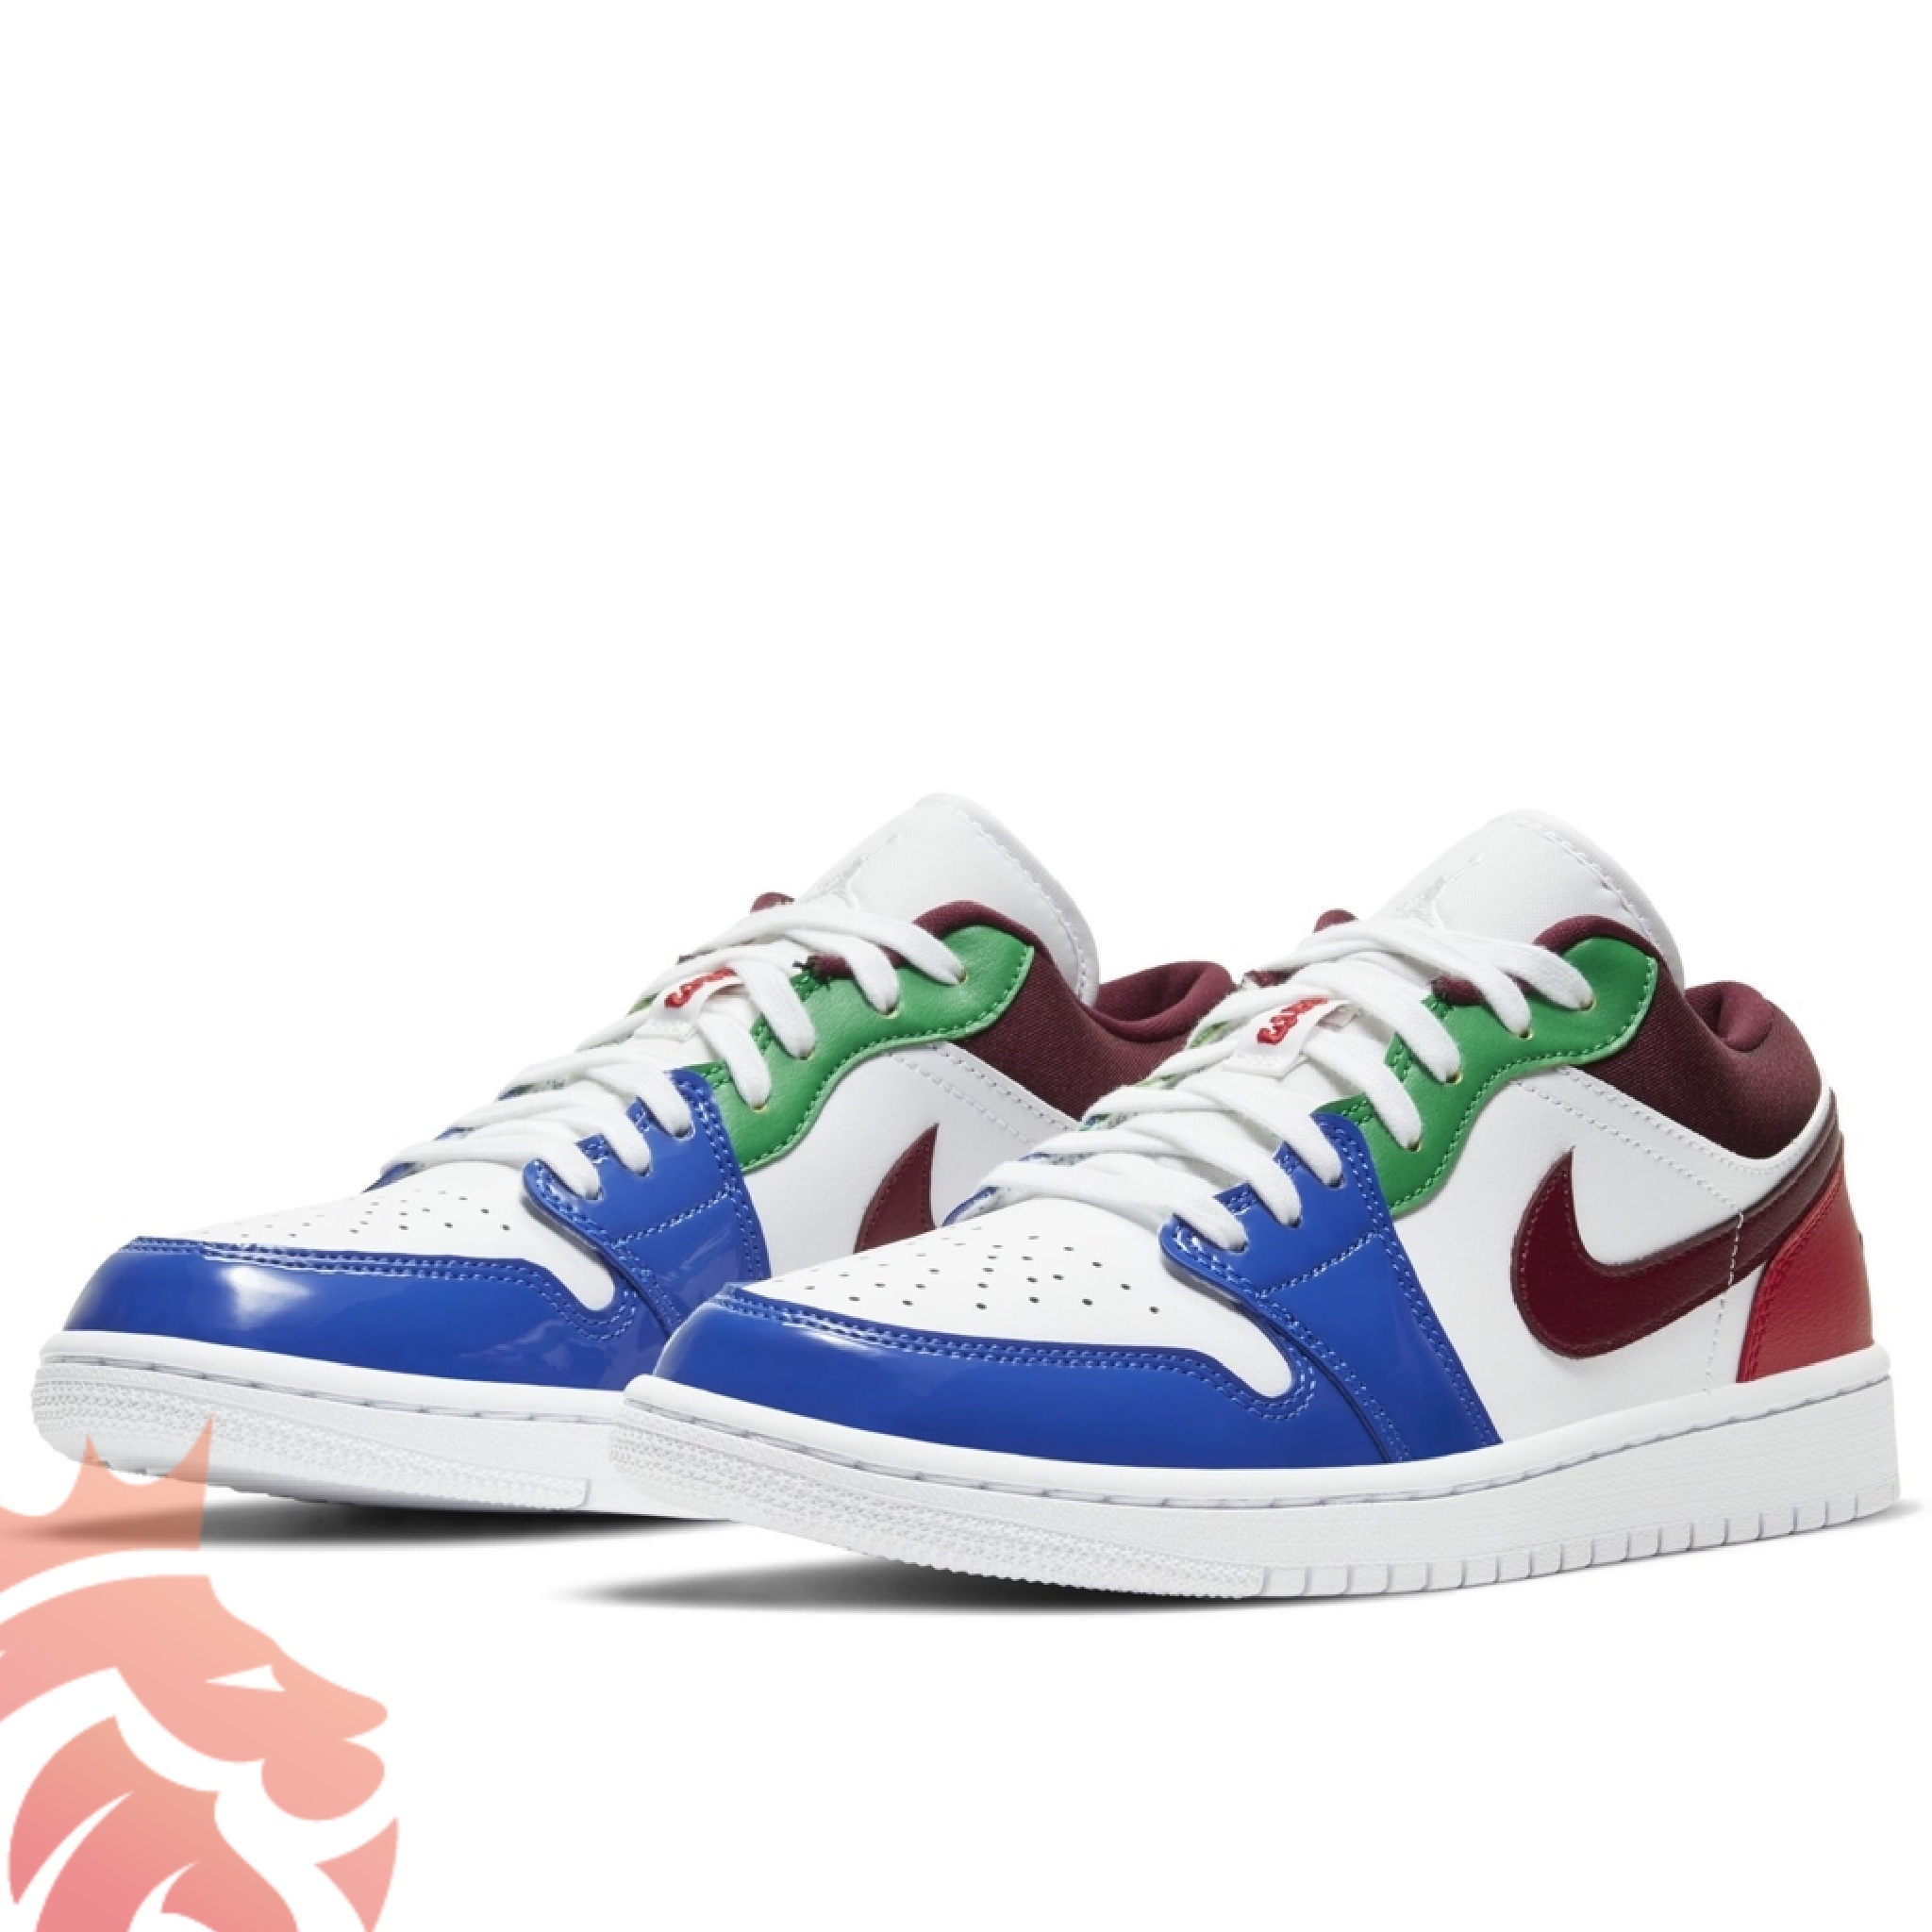 Air Jordan 1 Low Multi-Color White/Blue/Green/Burgundy/Red